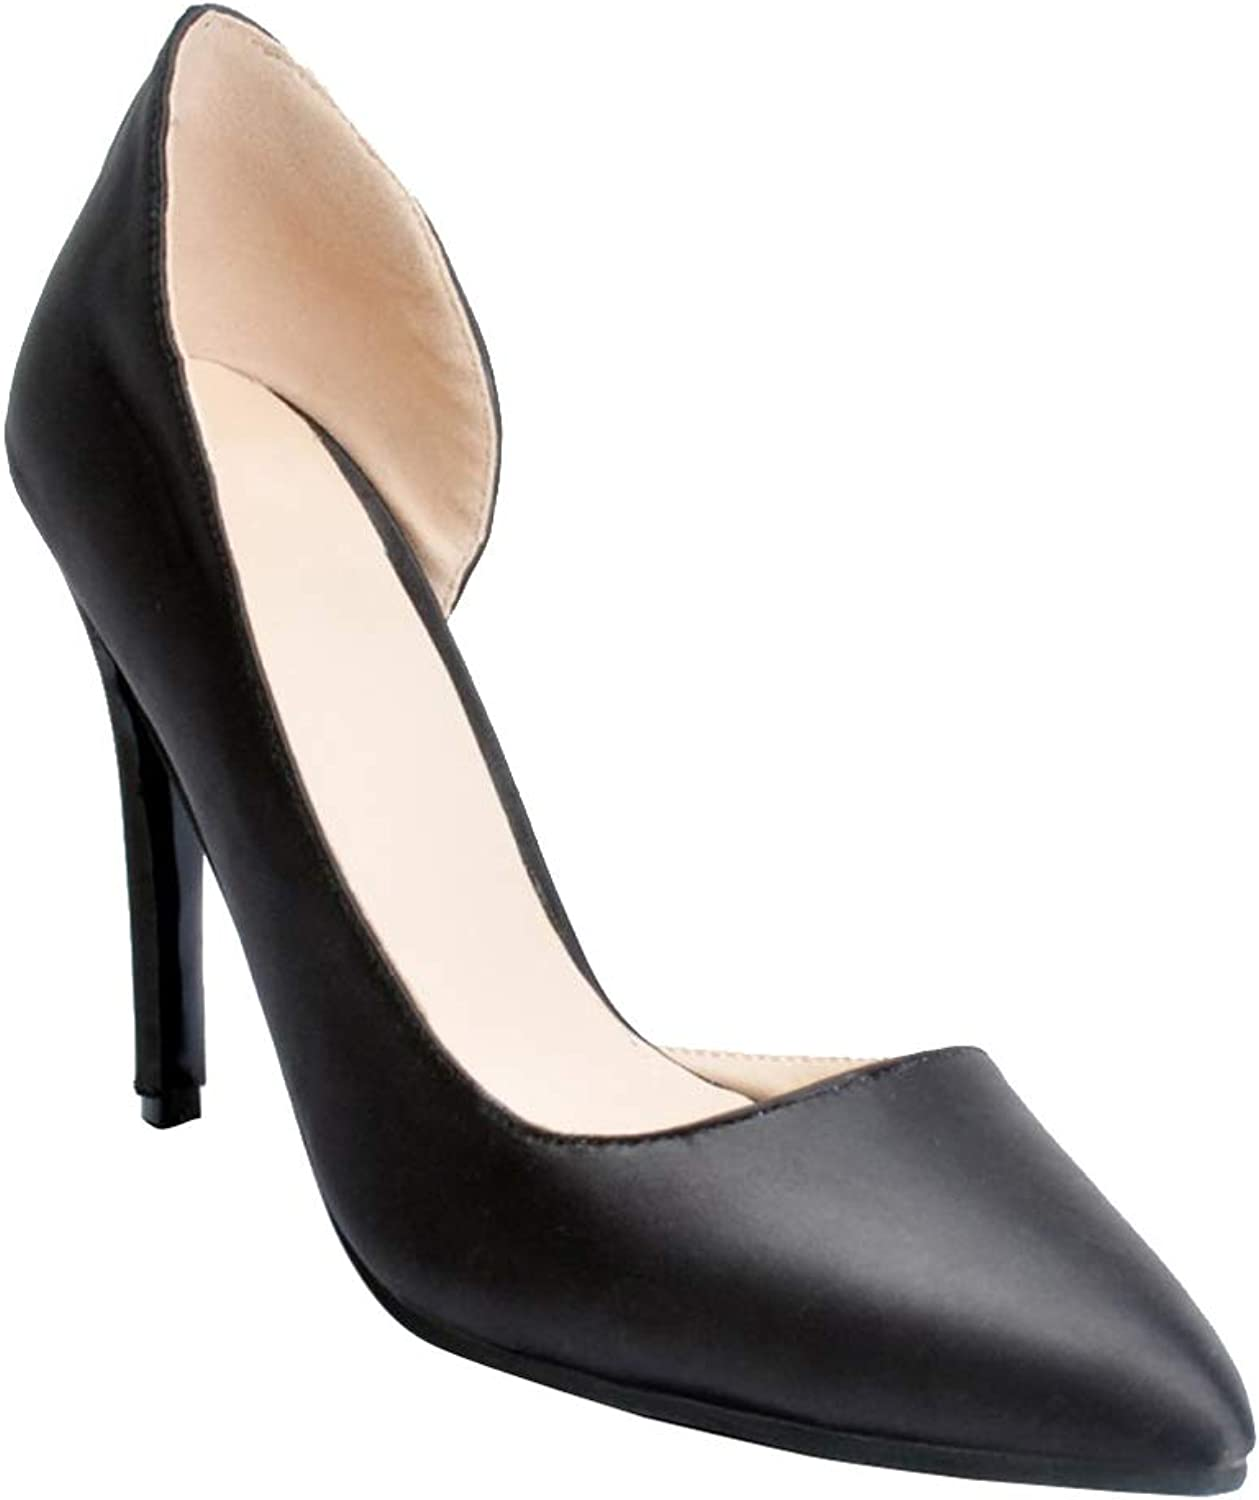 CASSOCK Ladies Handcrafted Simple High Heel Pumps D'Orsay Office Daily Walk Casual shoes